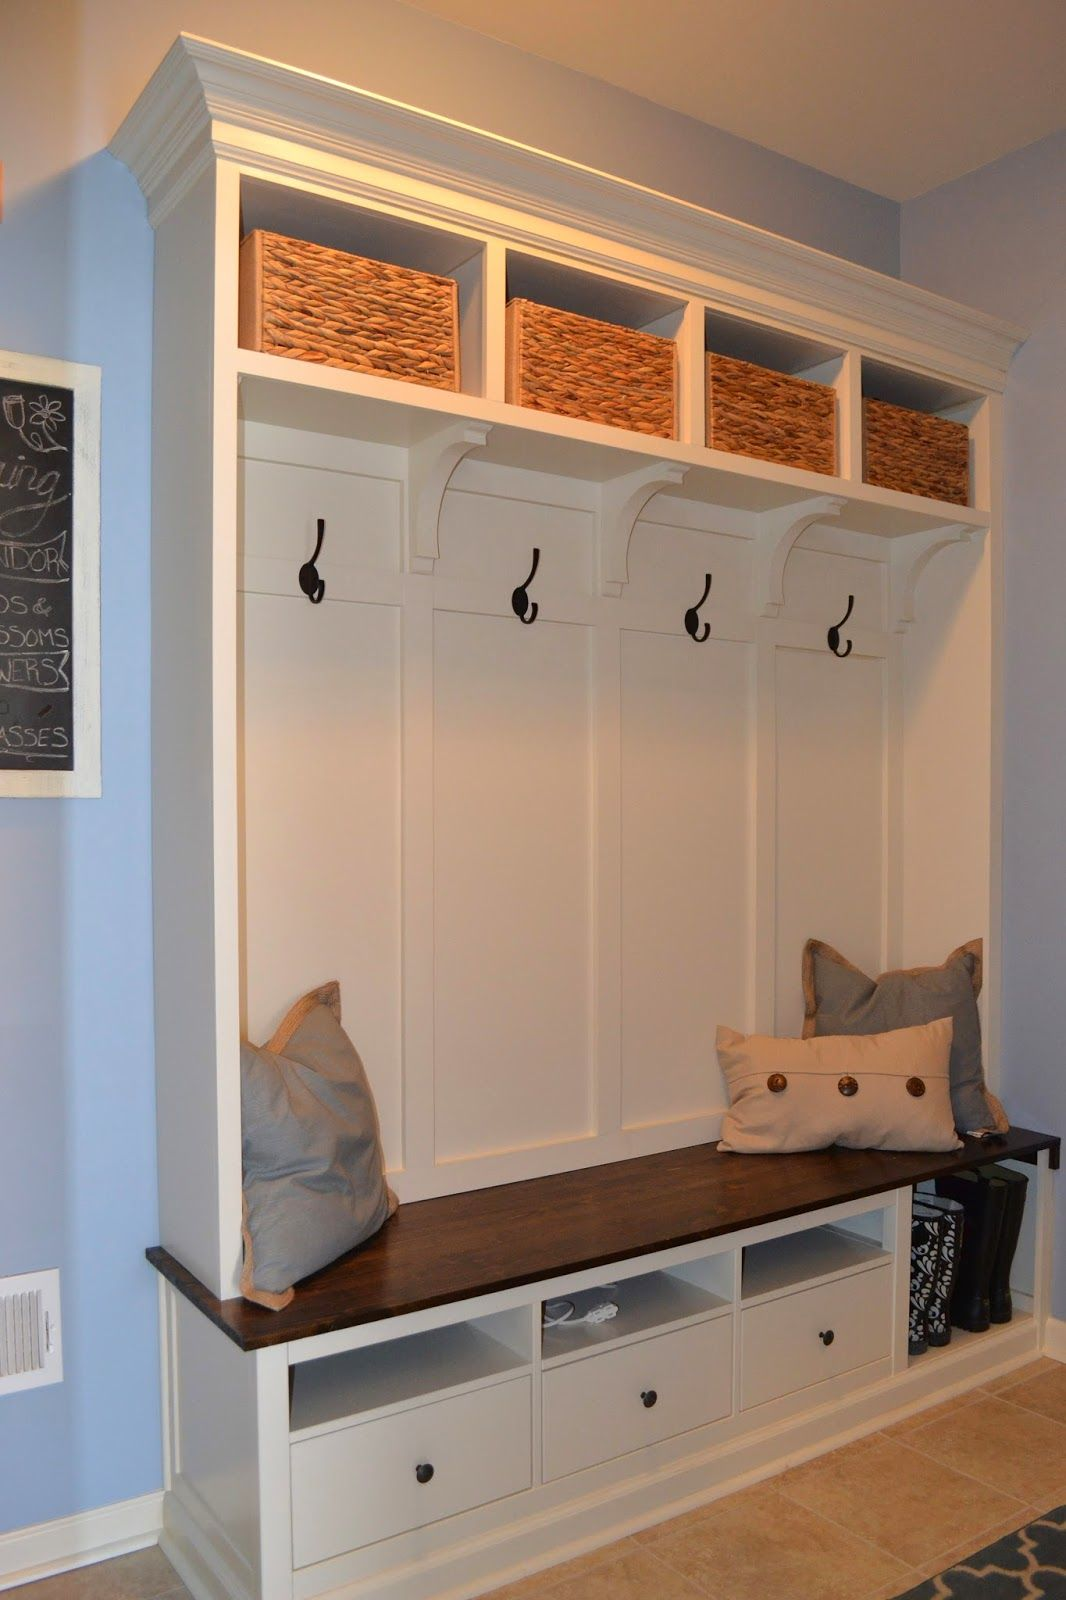 Ikea Hallway Furniture Intended Furniture Beautiful Ikea Hack Entry Bench With Decorative Kidney Pillows And Black Hunter Boots Near To White Framed Chalkboard Also Air Return Grille Bottom Bit Is The Kind Of Thing Id Like Do In Hallway